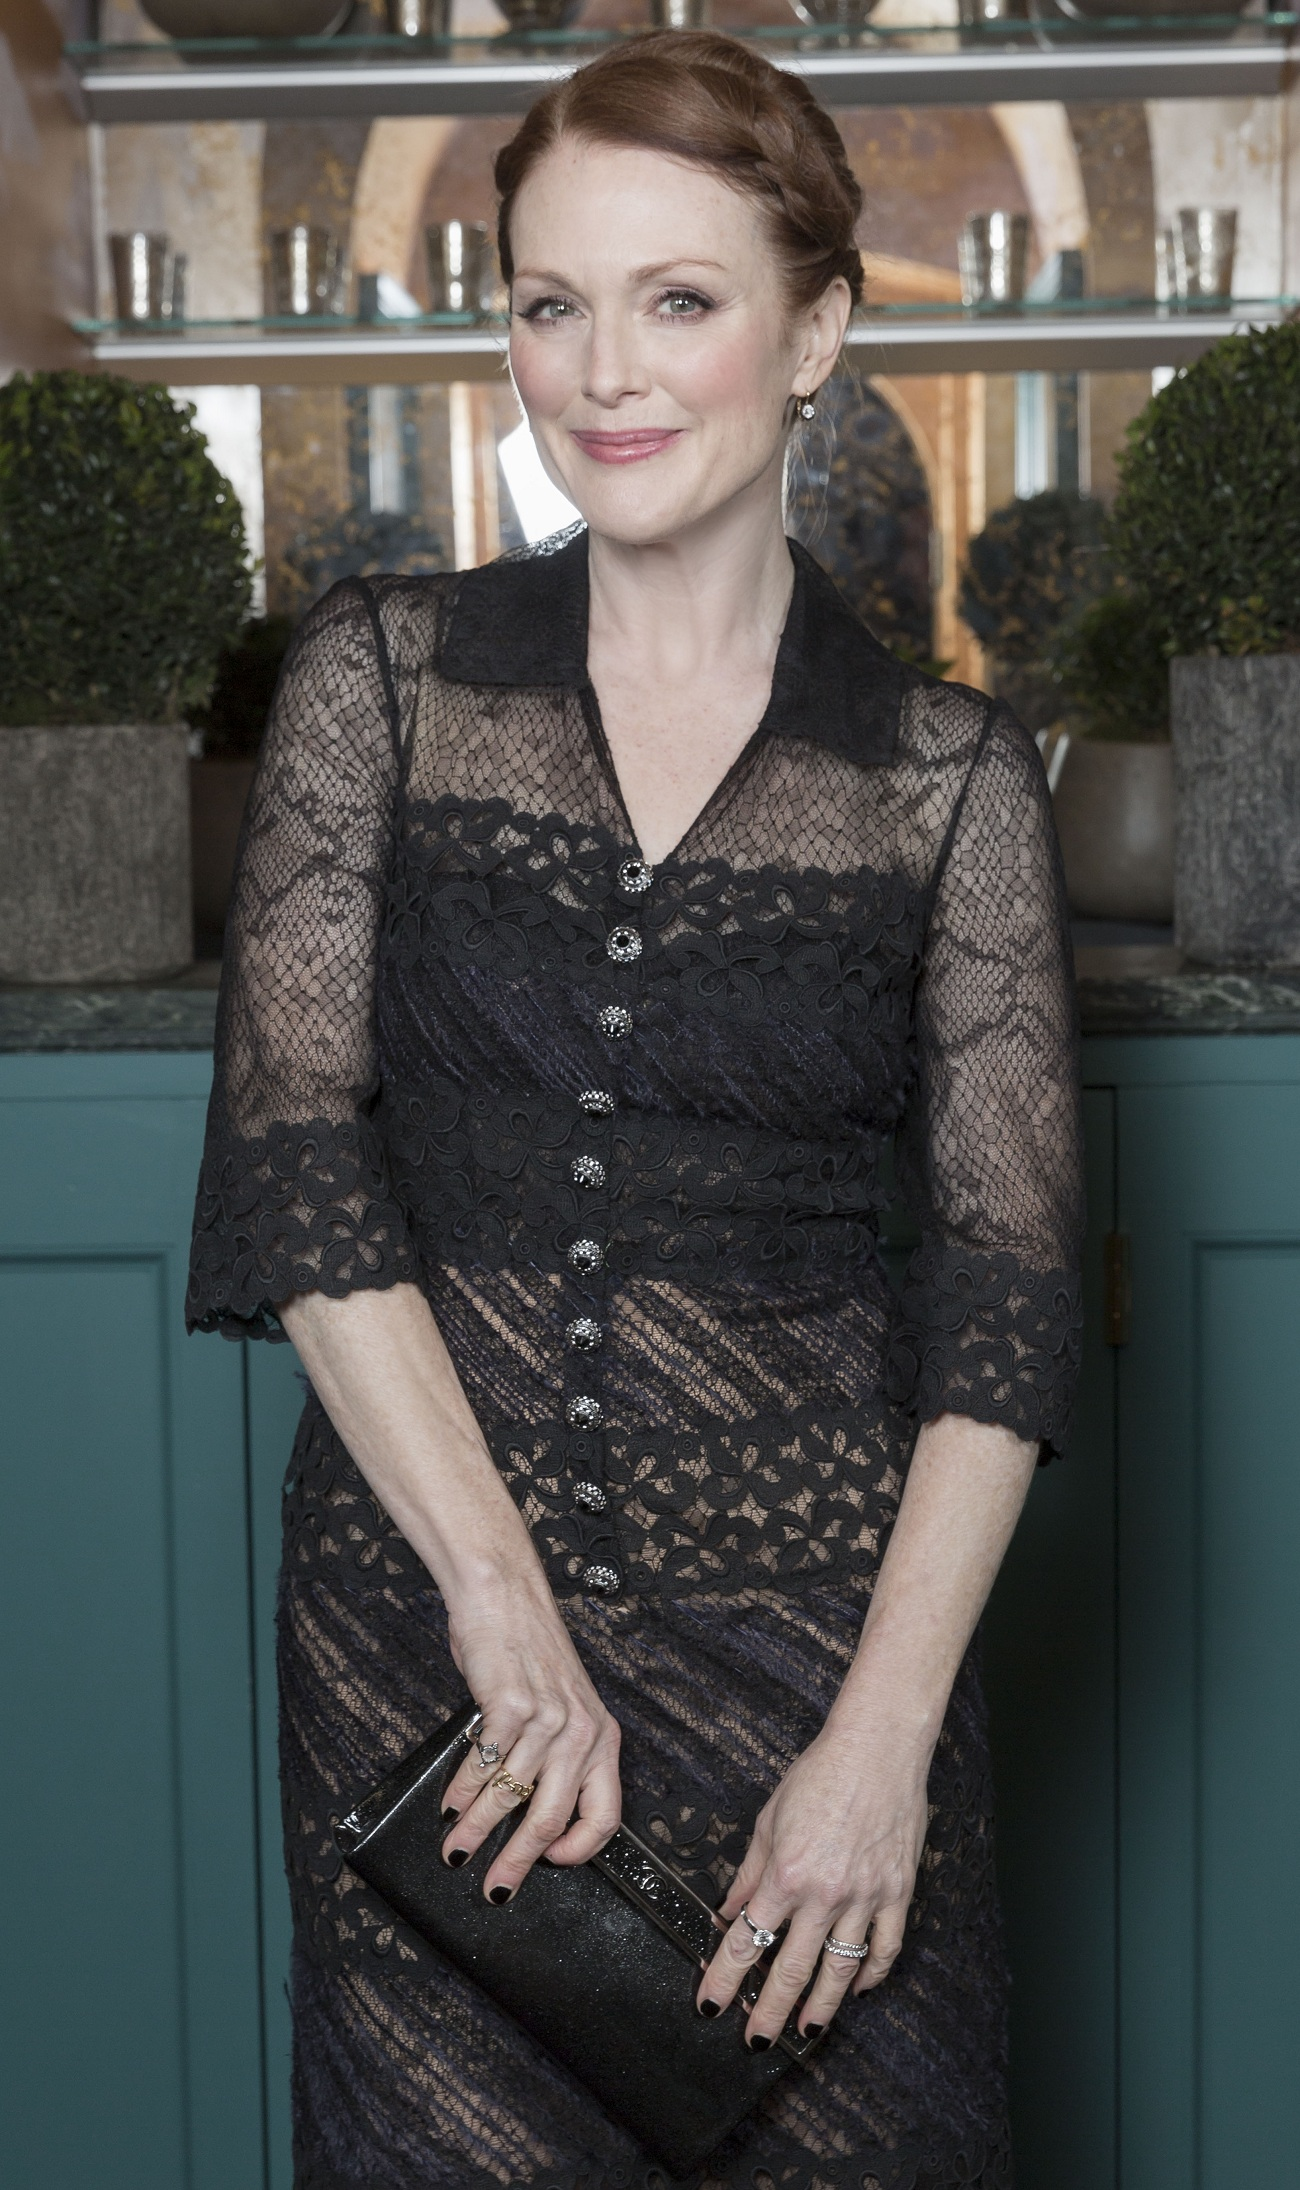 Julianne Moore Chanel Pre-Bafta Fashionela